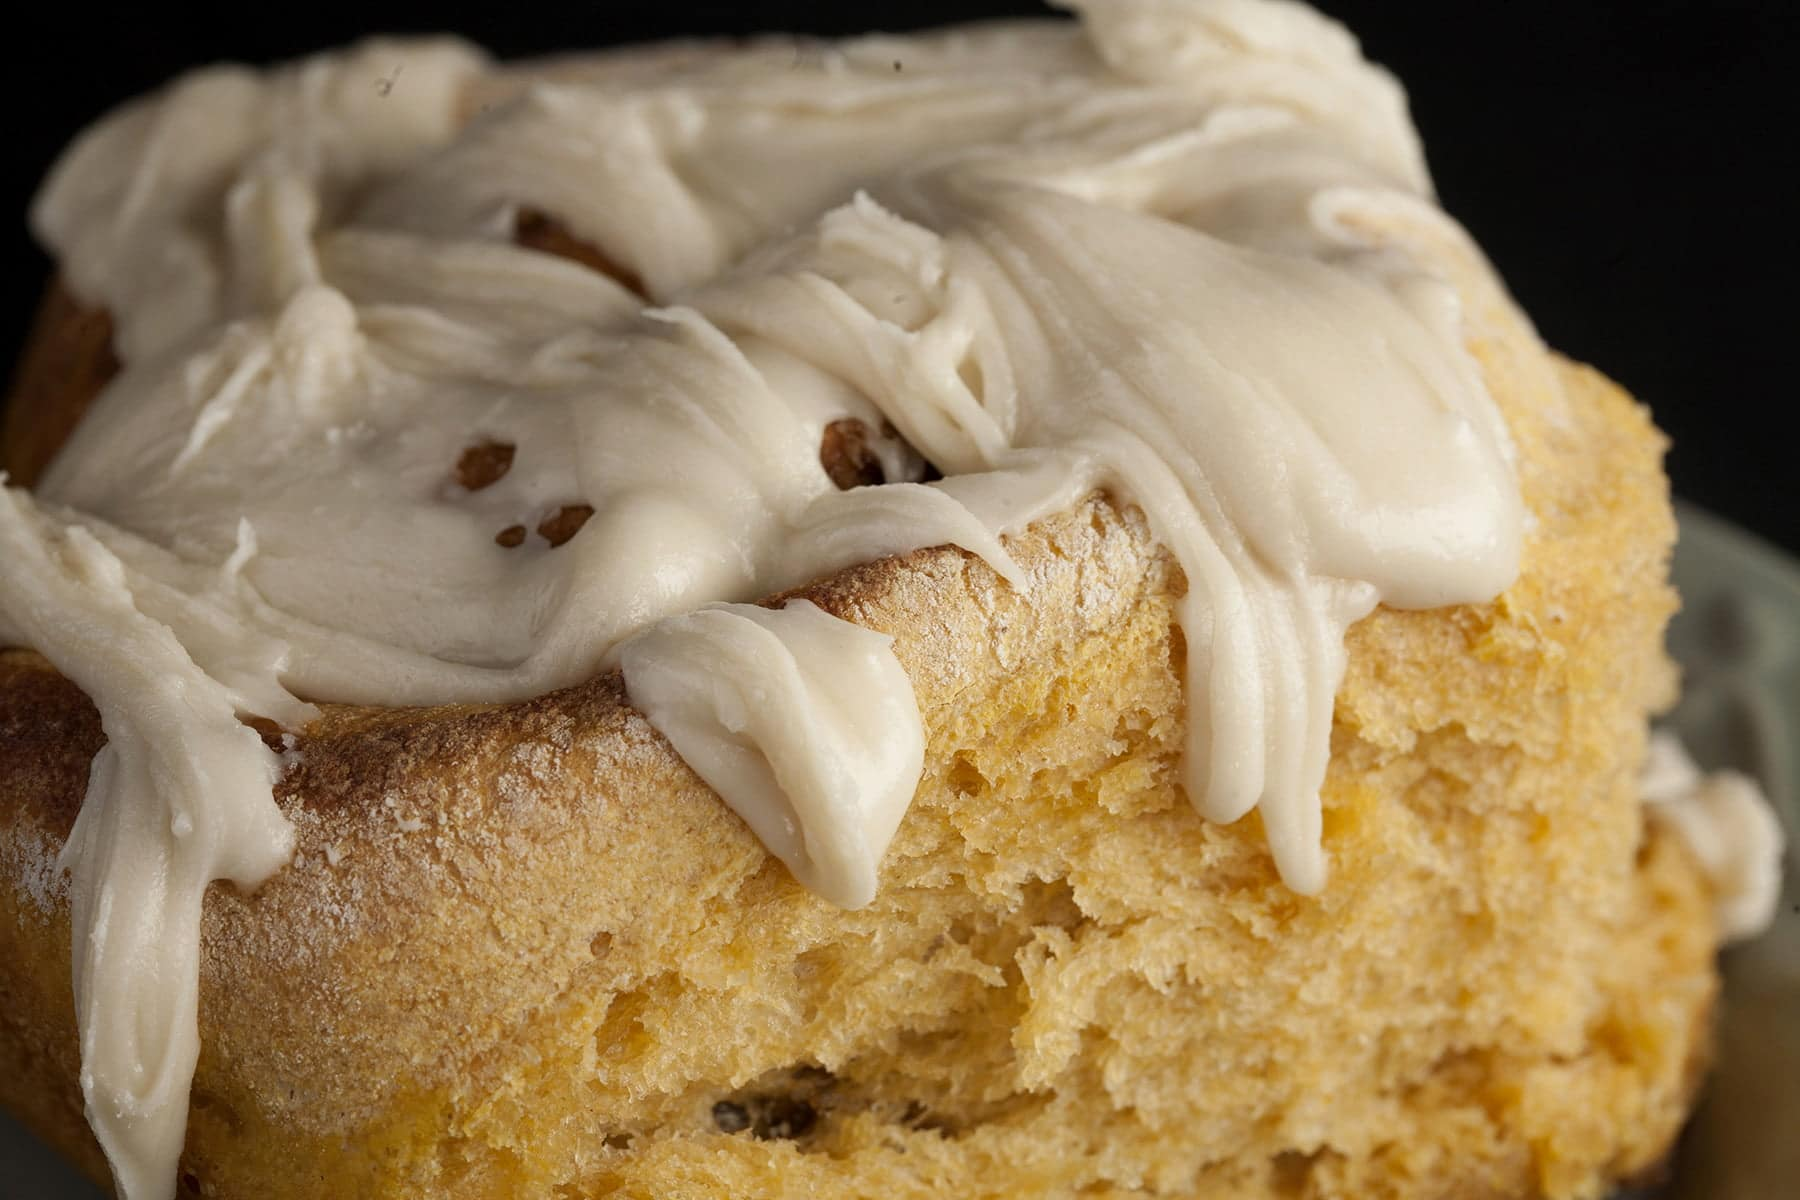 A large maple pumpkin spiced bun - like a cinnamon roll - on a plate. It is covered in a white frosting.